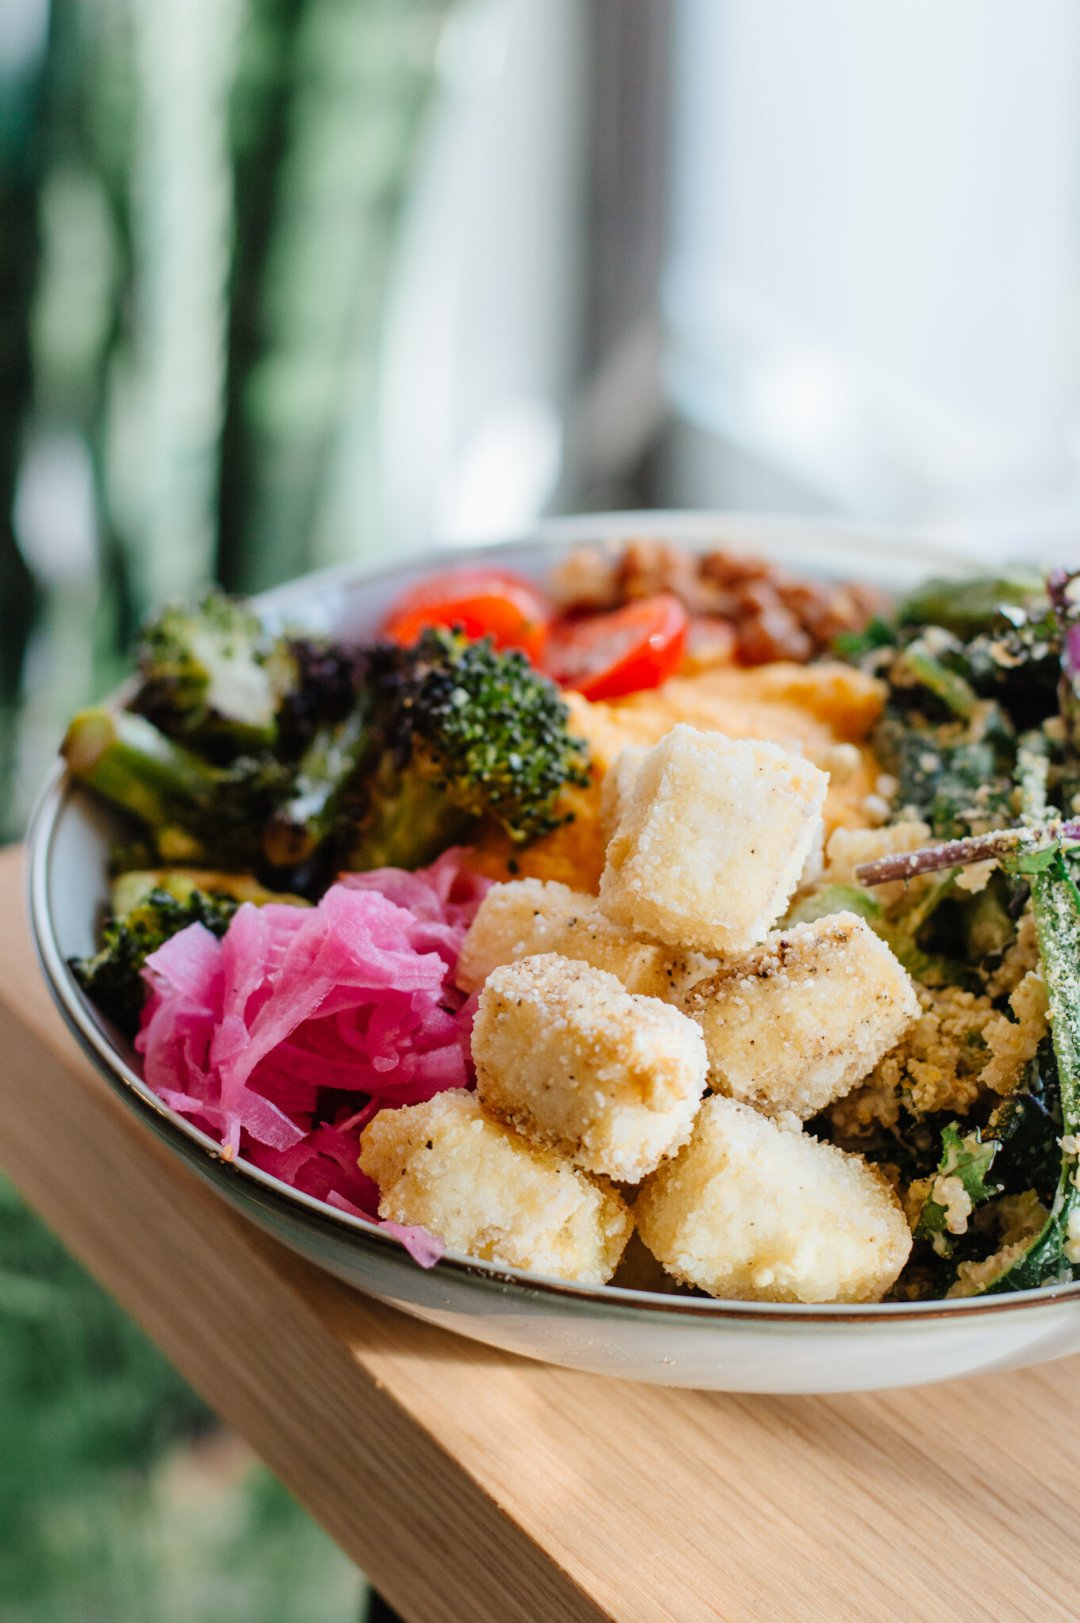 Grounds & Greens Cafe   A white rock vegan restaurant specializing in elevated plant based cuisine and beverages